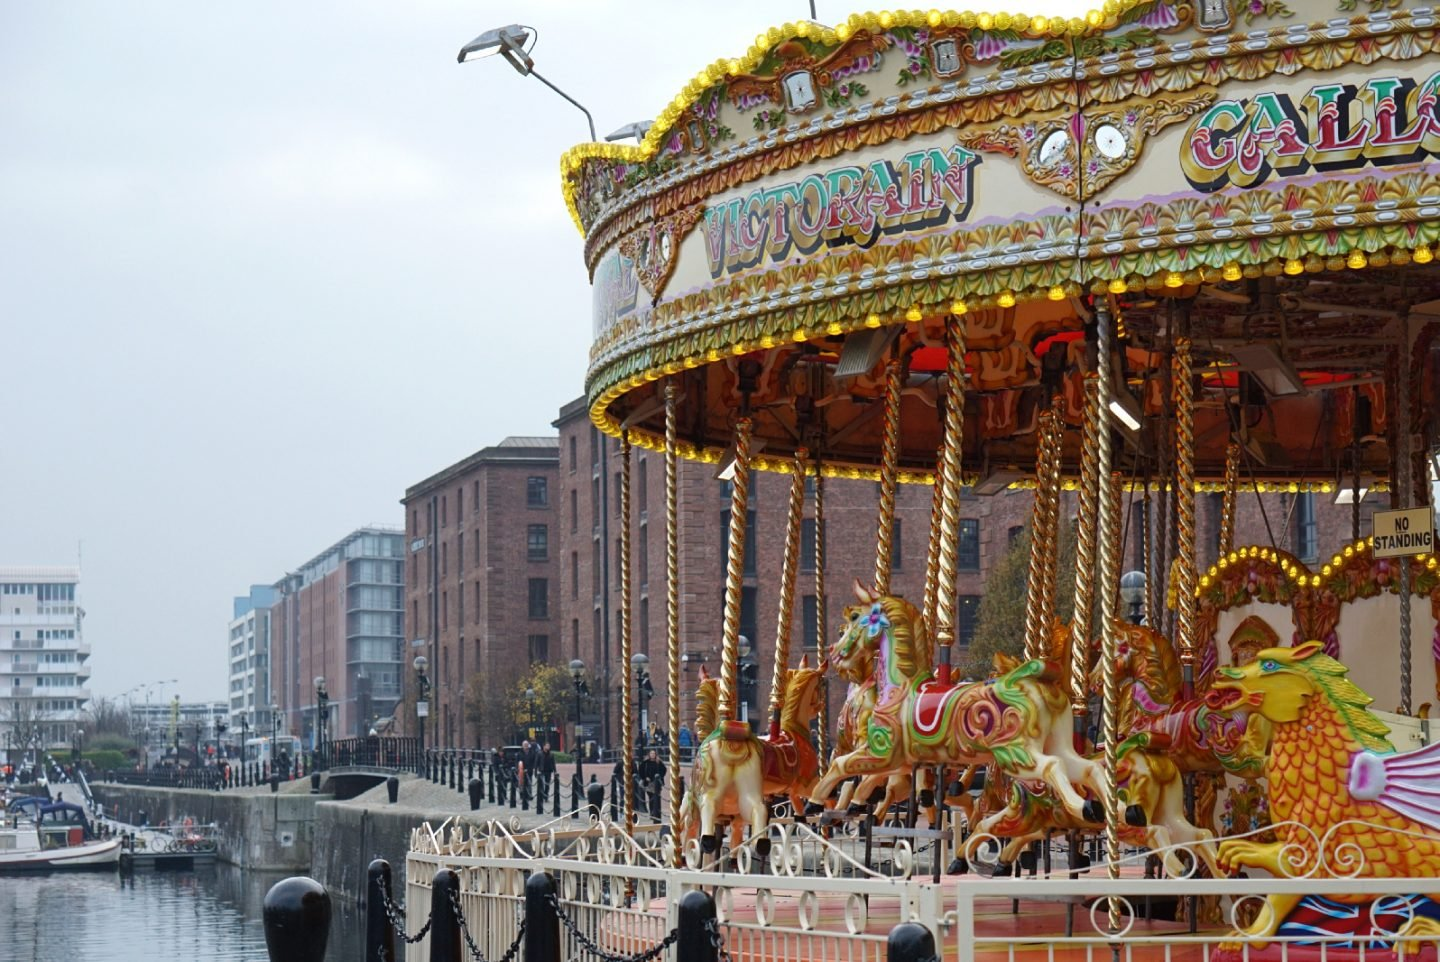 Carousel at Albert Docks Liverpool